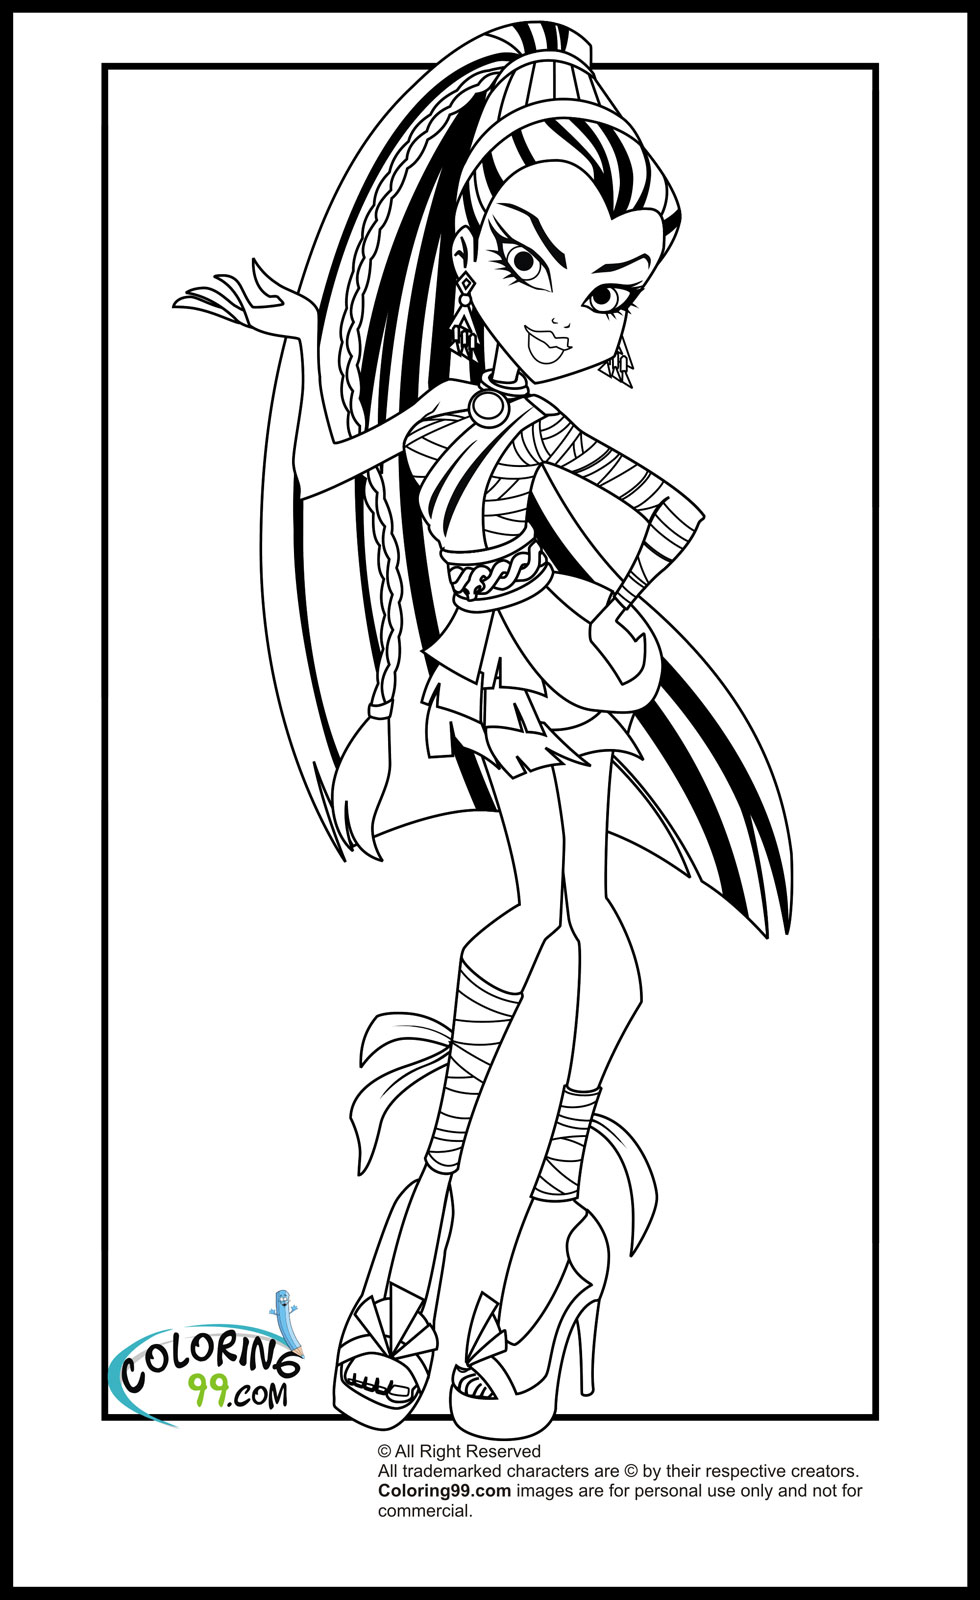 monster high colouring sheet monster high frankie stein coloring pages team colors sheet high monster colouring